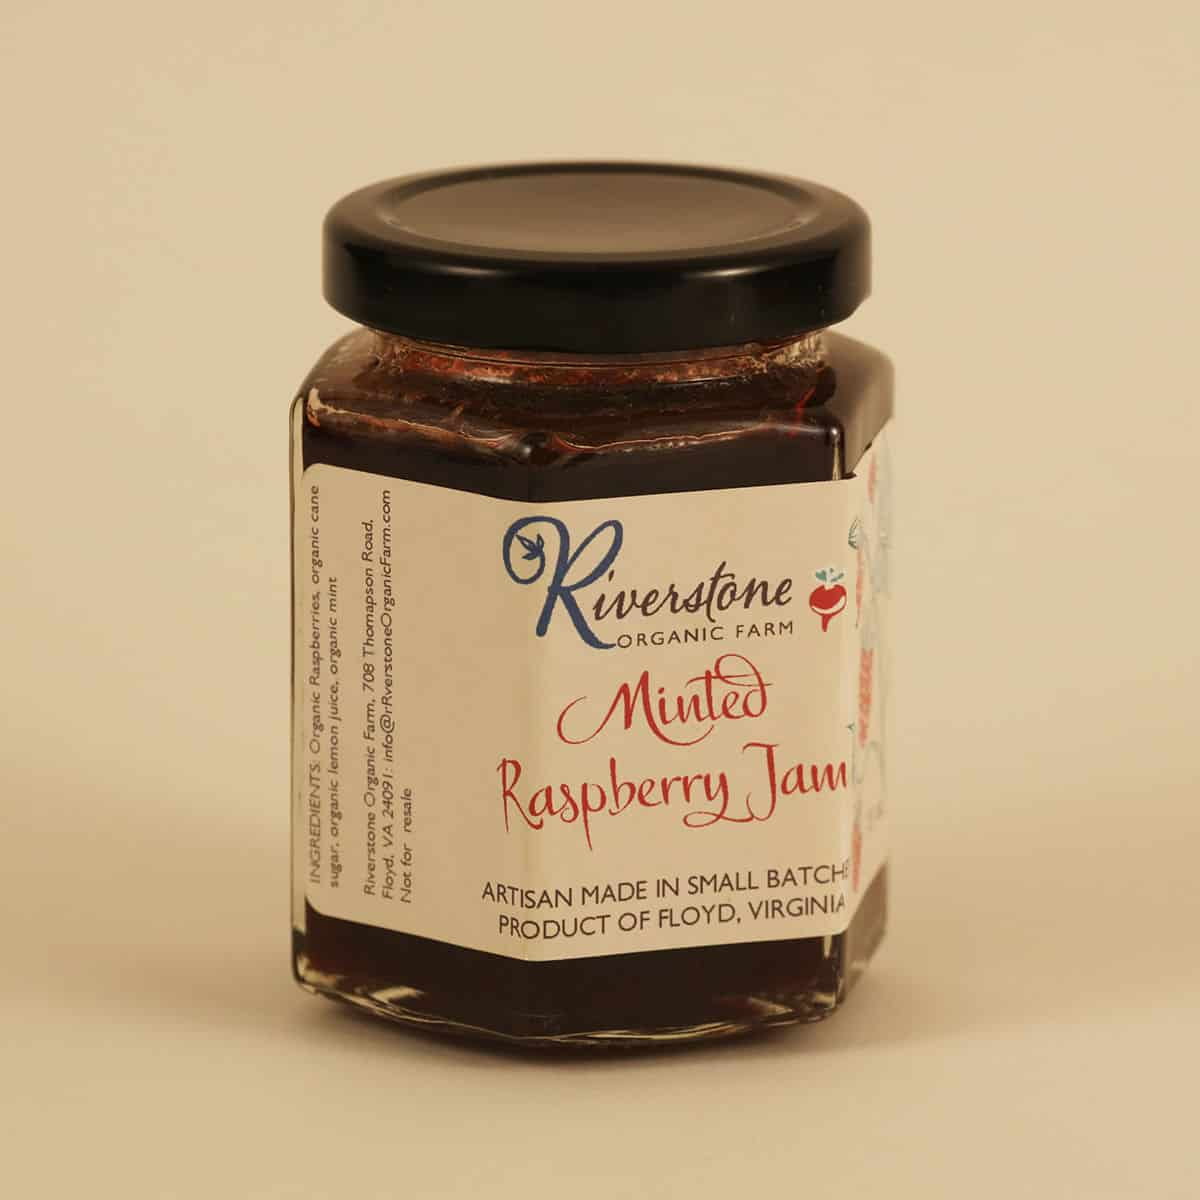 Riverstone Farm Kitchen Minted Raspberry Jam